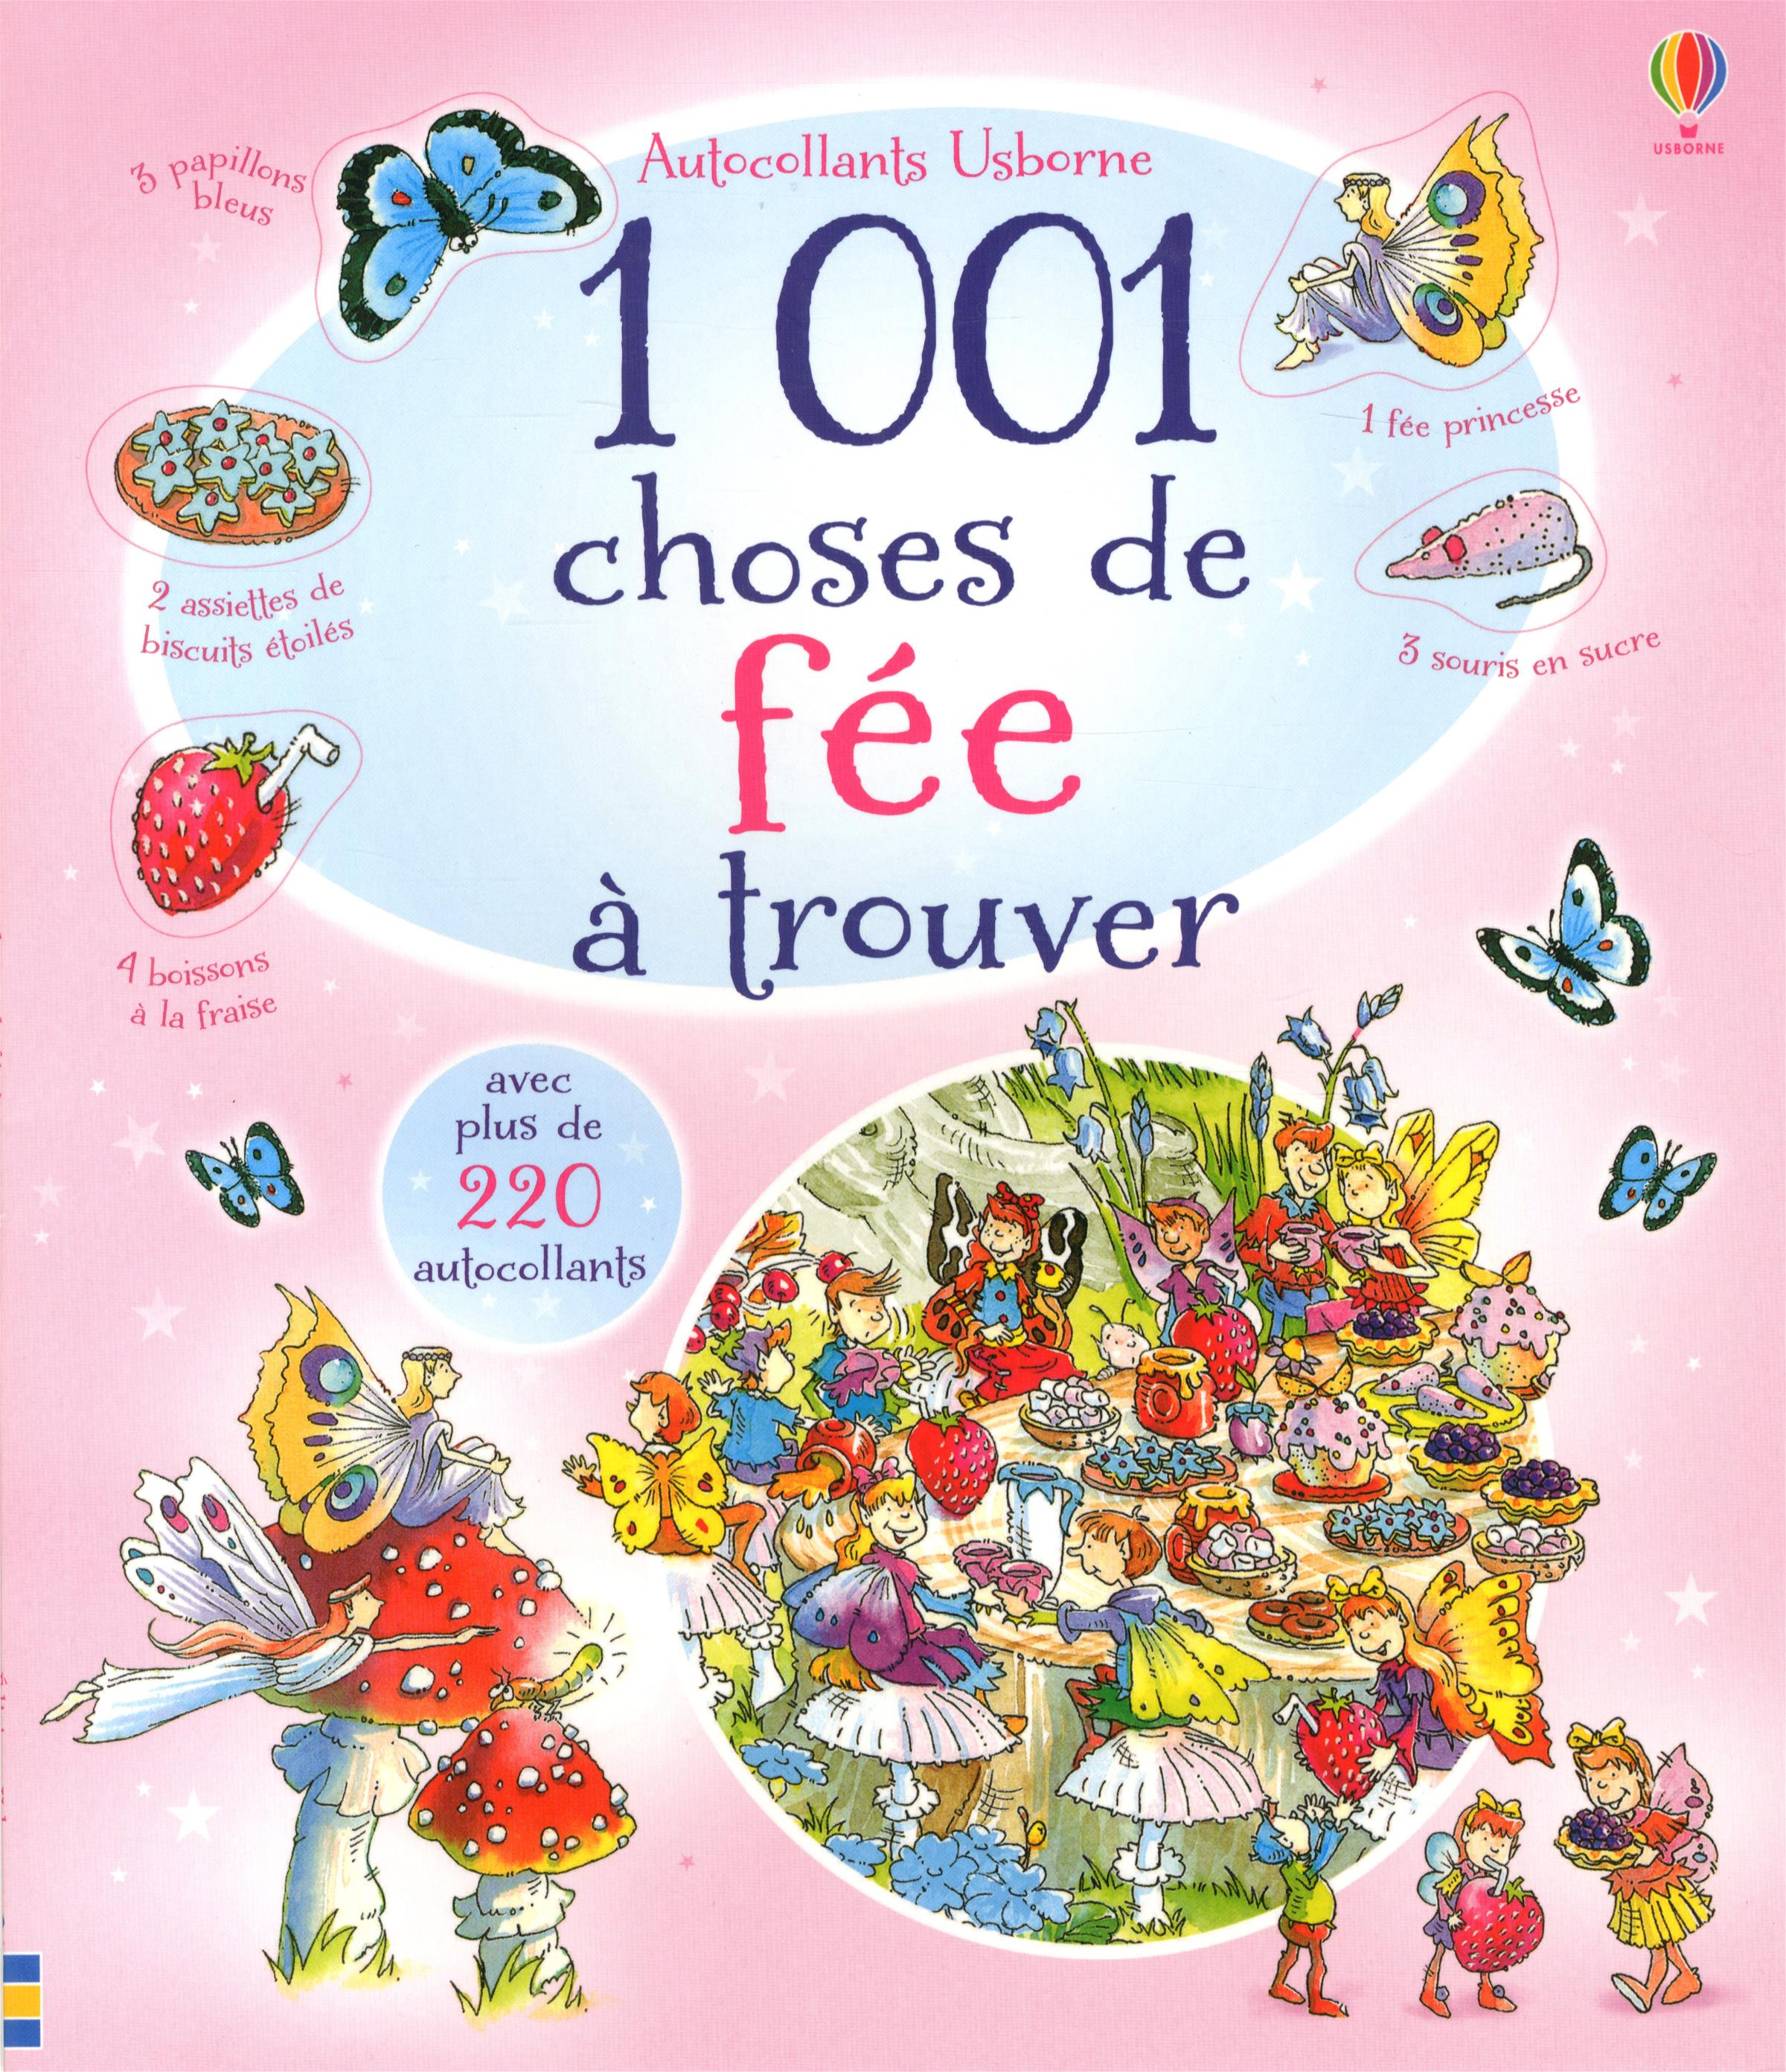 Agrandir · 4 de couverture. 9781409580874. Editeur : Usborne; Collection : Autocollants  Usborne ...